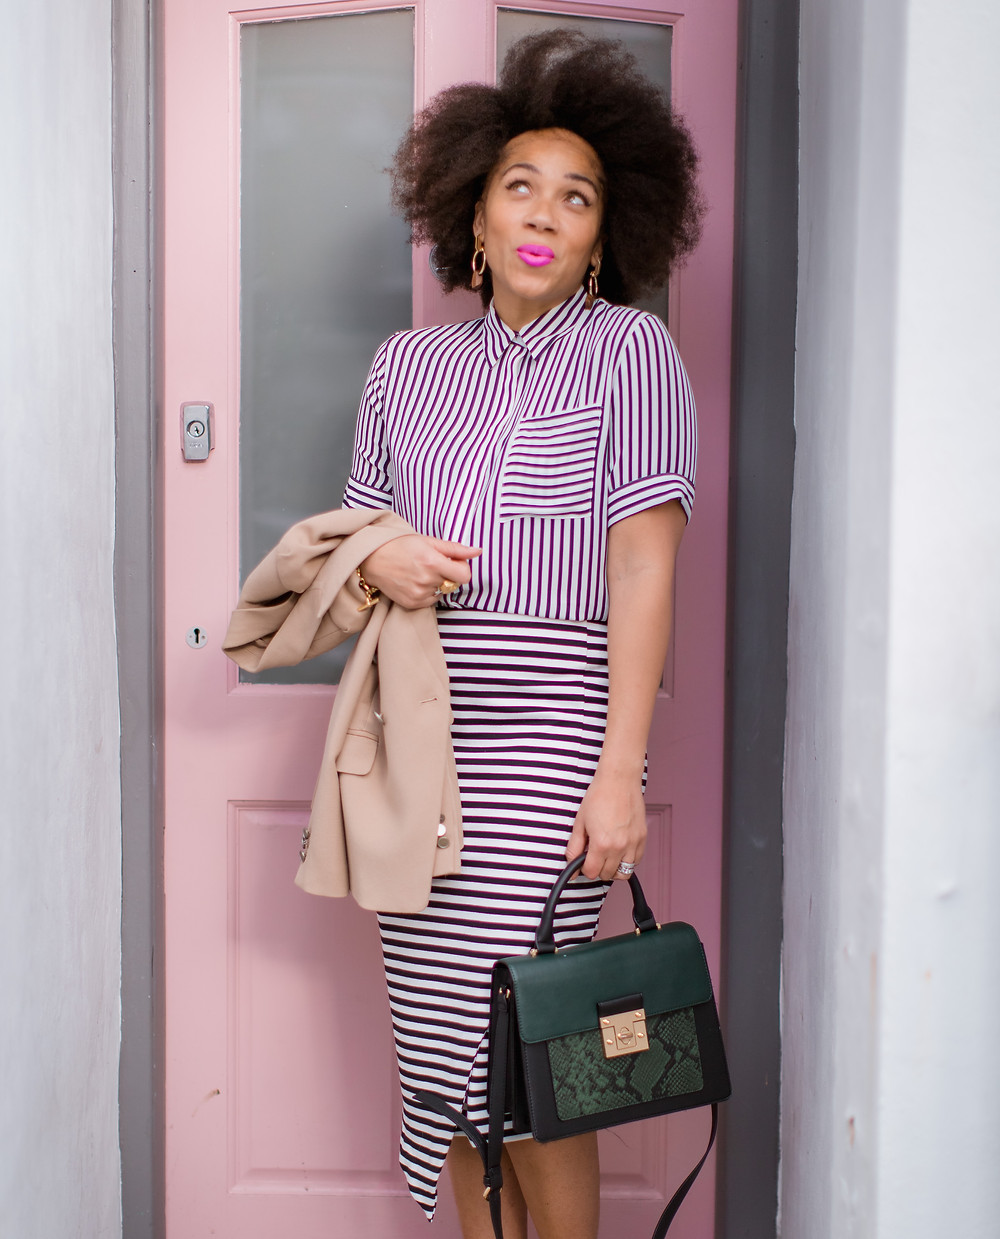 Striped shirt from M&S paired with a horizontally striped skirt